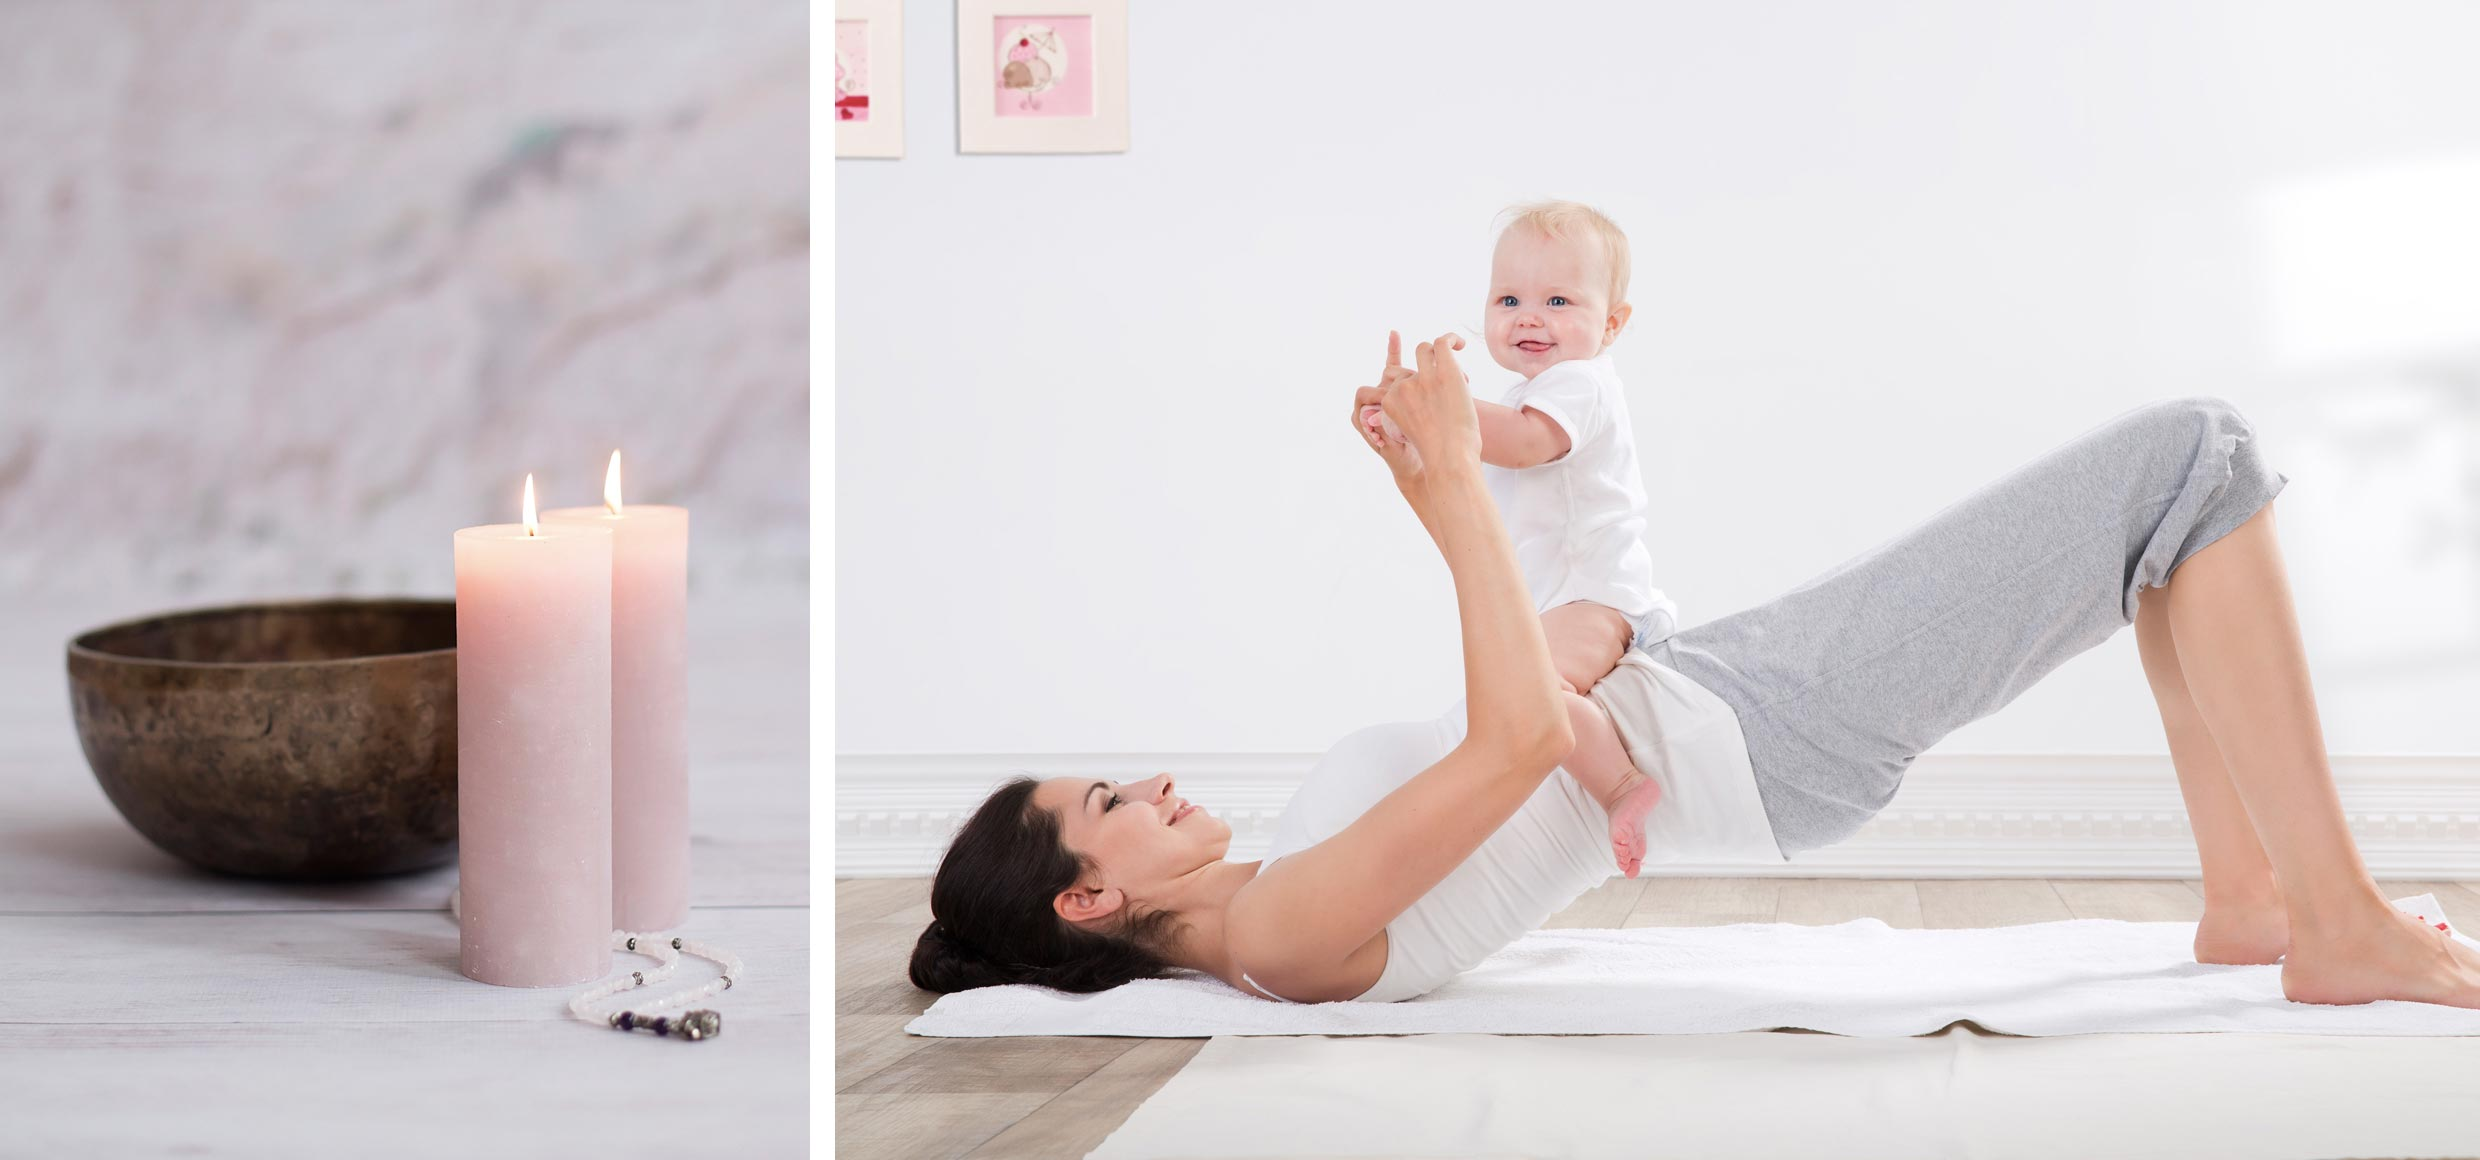 Mama Baby Yoga - Chantal Yoga in Aarau